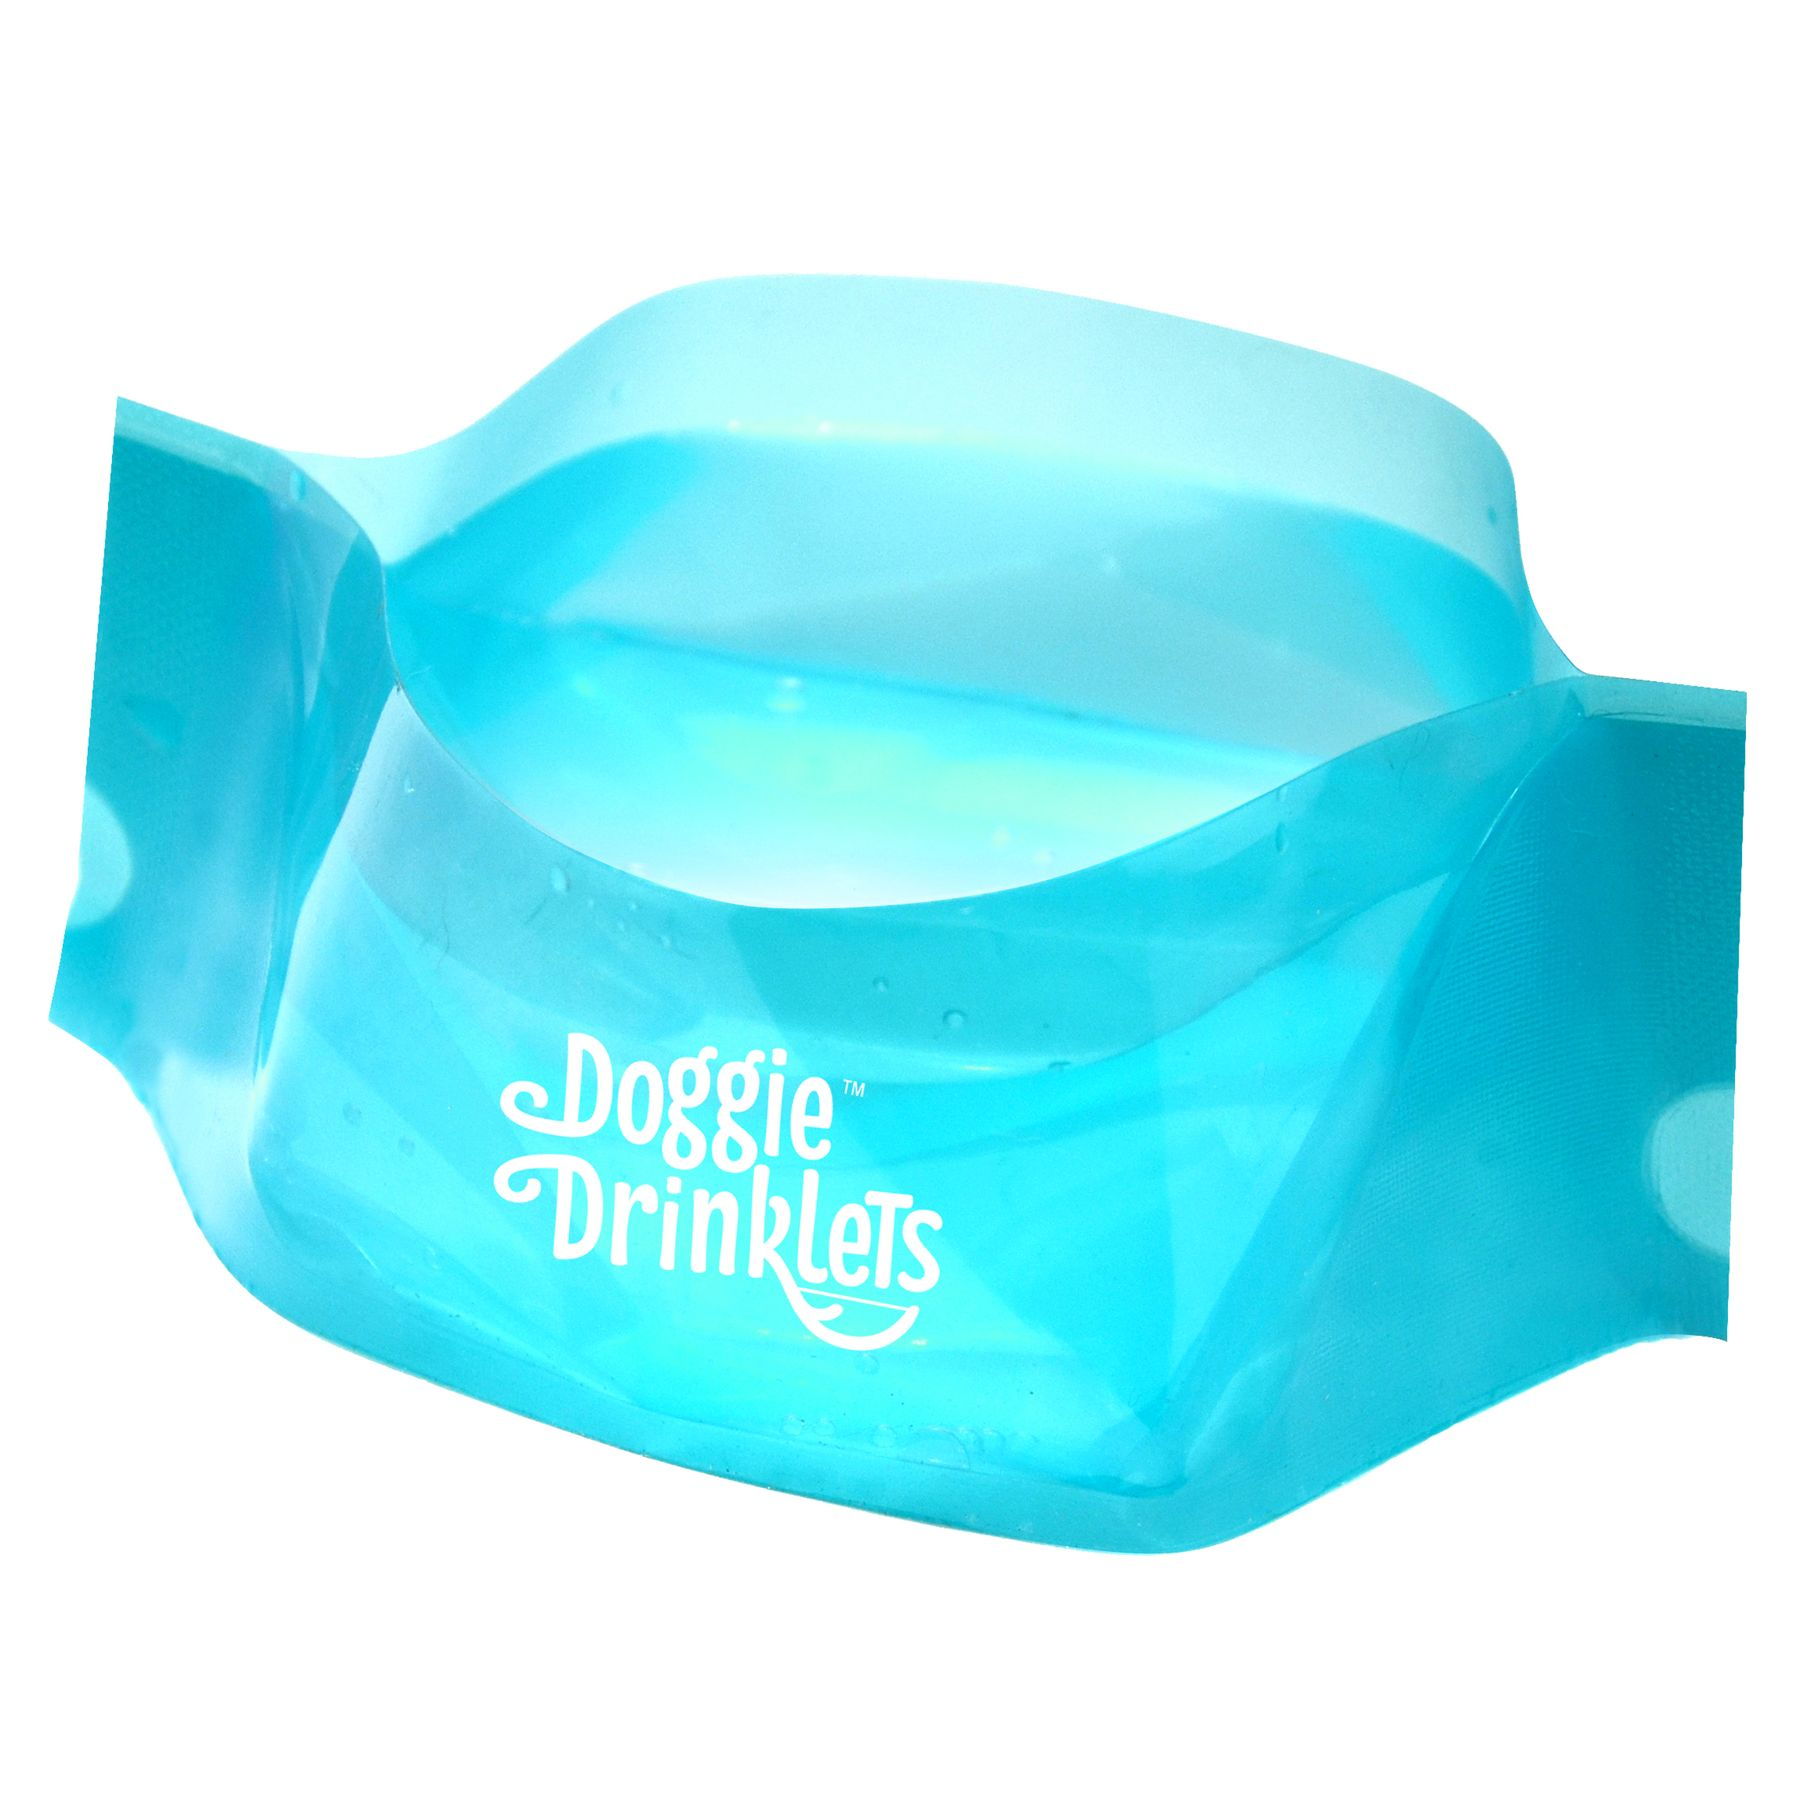 PupLight Doggie, Drinklet 5-Pack Reusable Water Bowl 5246739